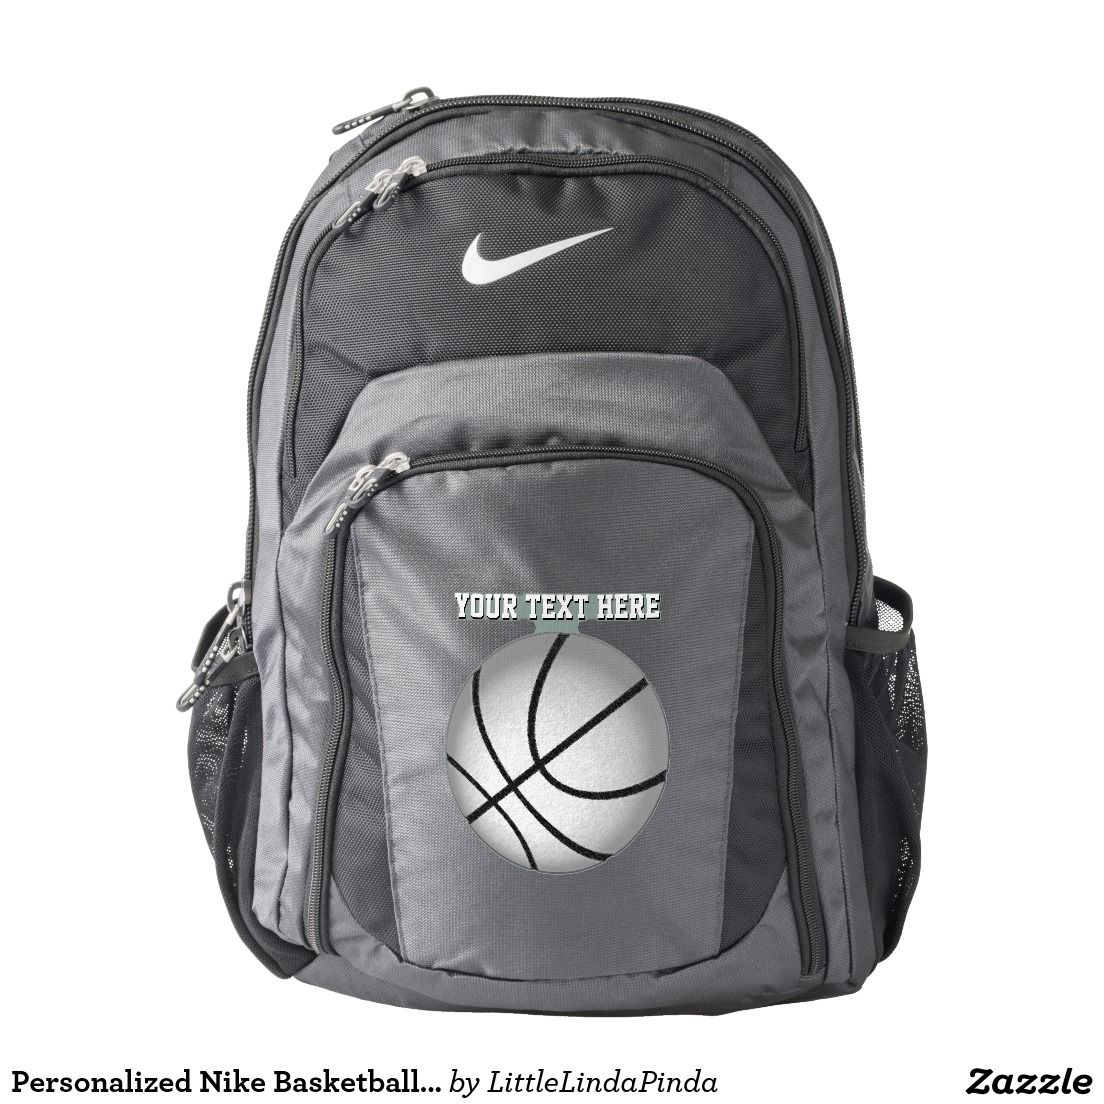 778863da2856 Personalized Nike Basketball Backpacks with YOUR TEXT typed into text box.  Great basketball gifts for